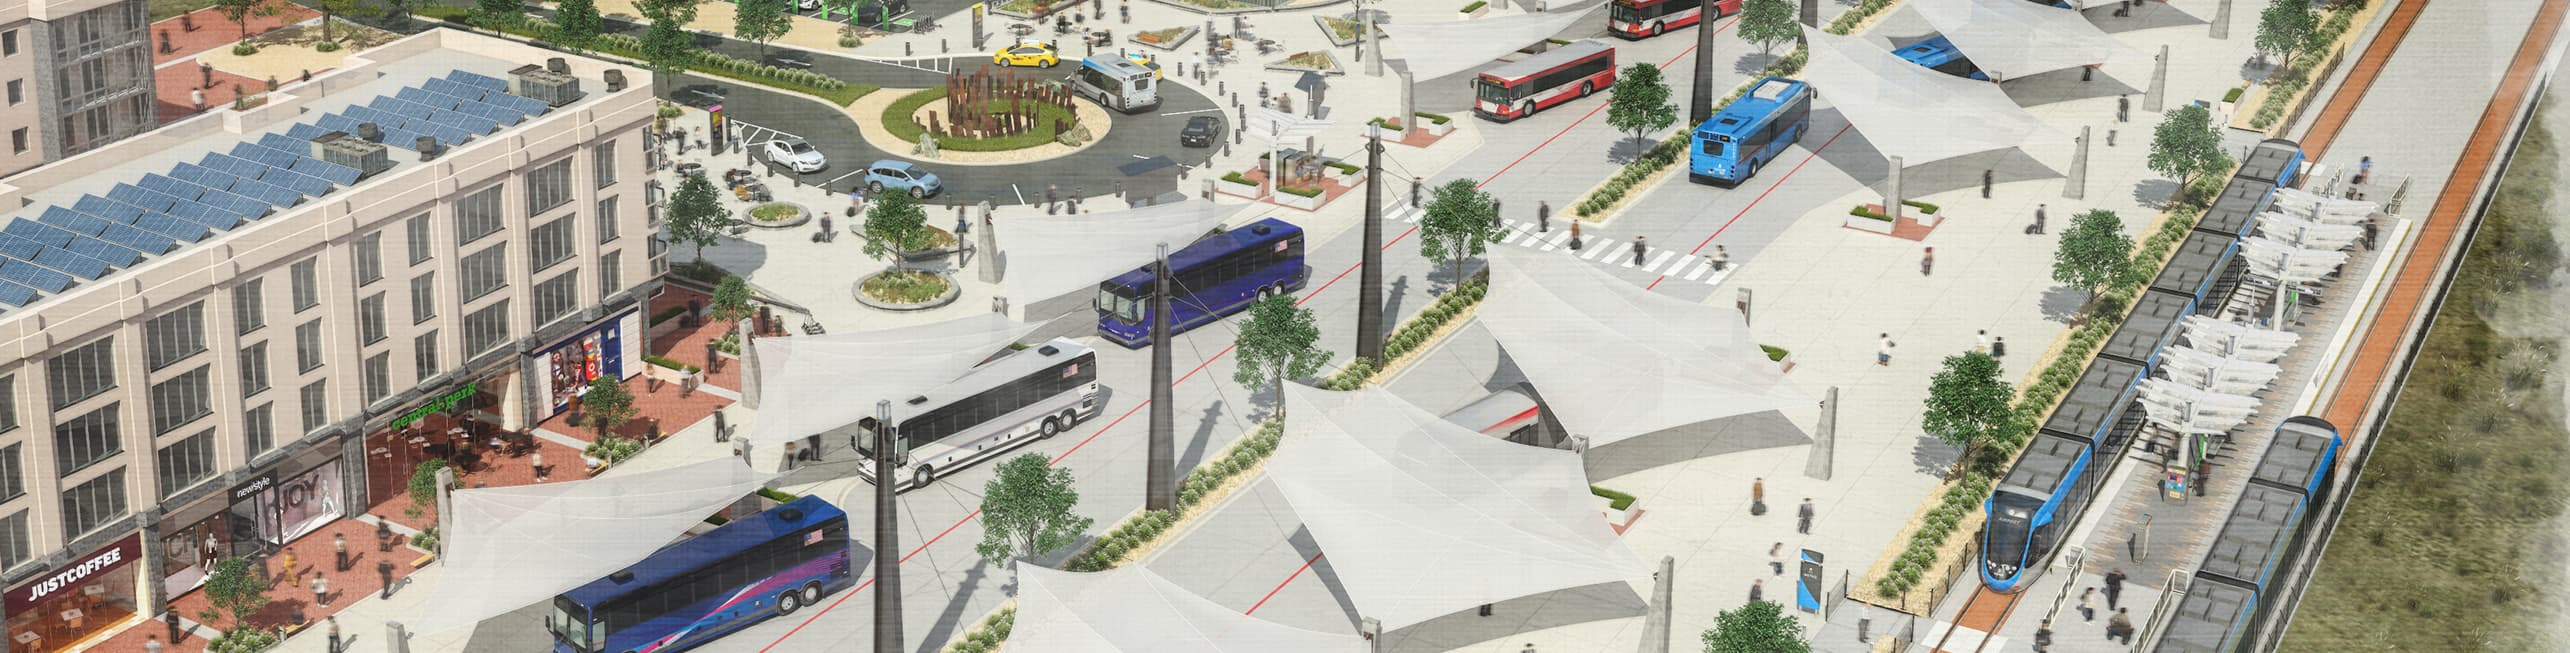 Artist's rendering of multiple public transit modes for Project Connect  - including Park and rides